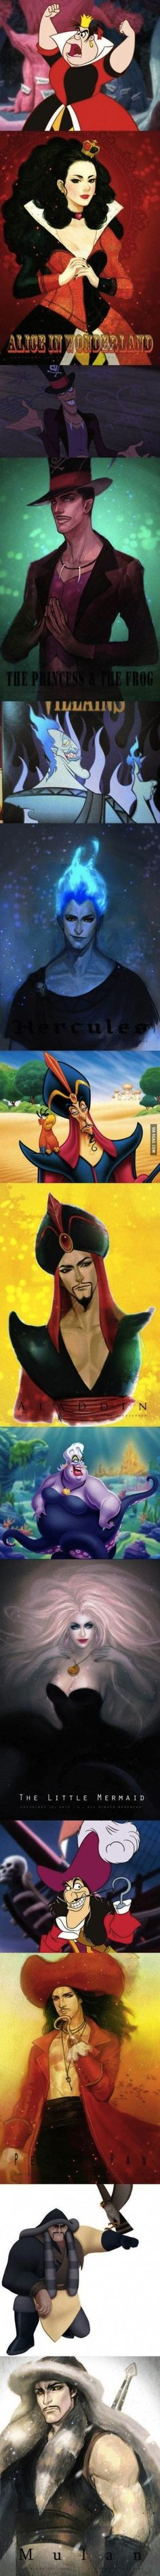 What if disney villains were beautiful 2